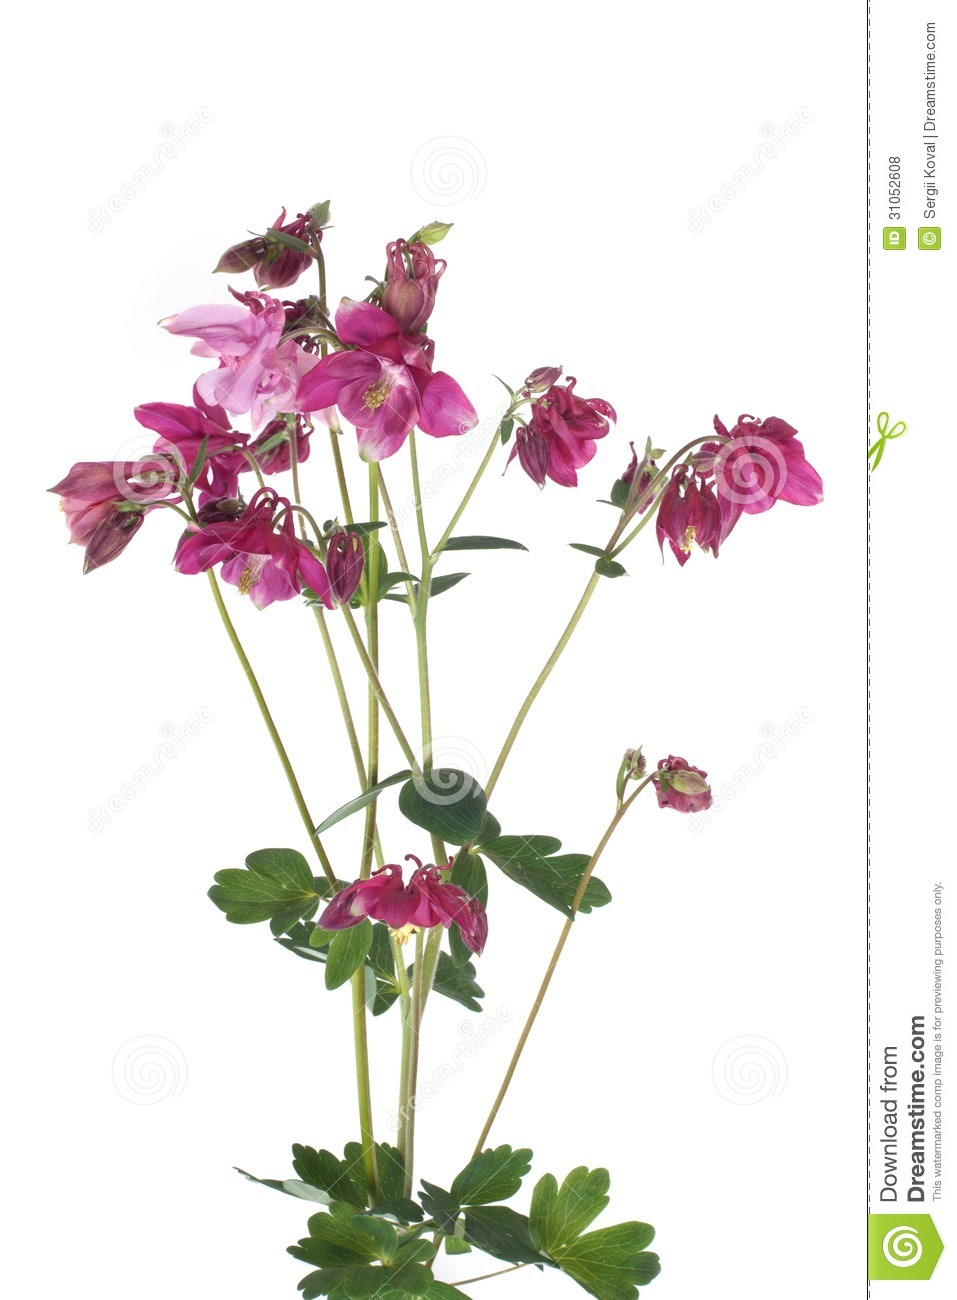 Bouquet of purple flowers columbine isolated on white stock photo bouquet of purple flowers columbine isolated on white izmirmasajfo